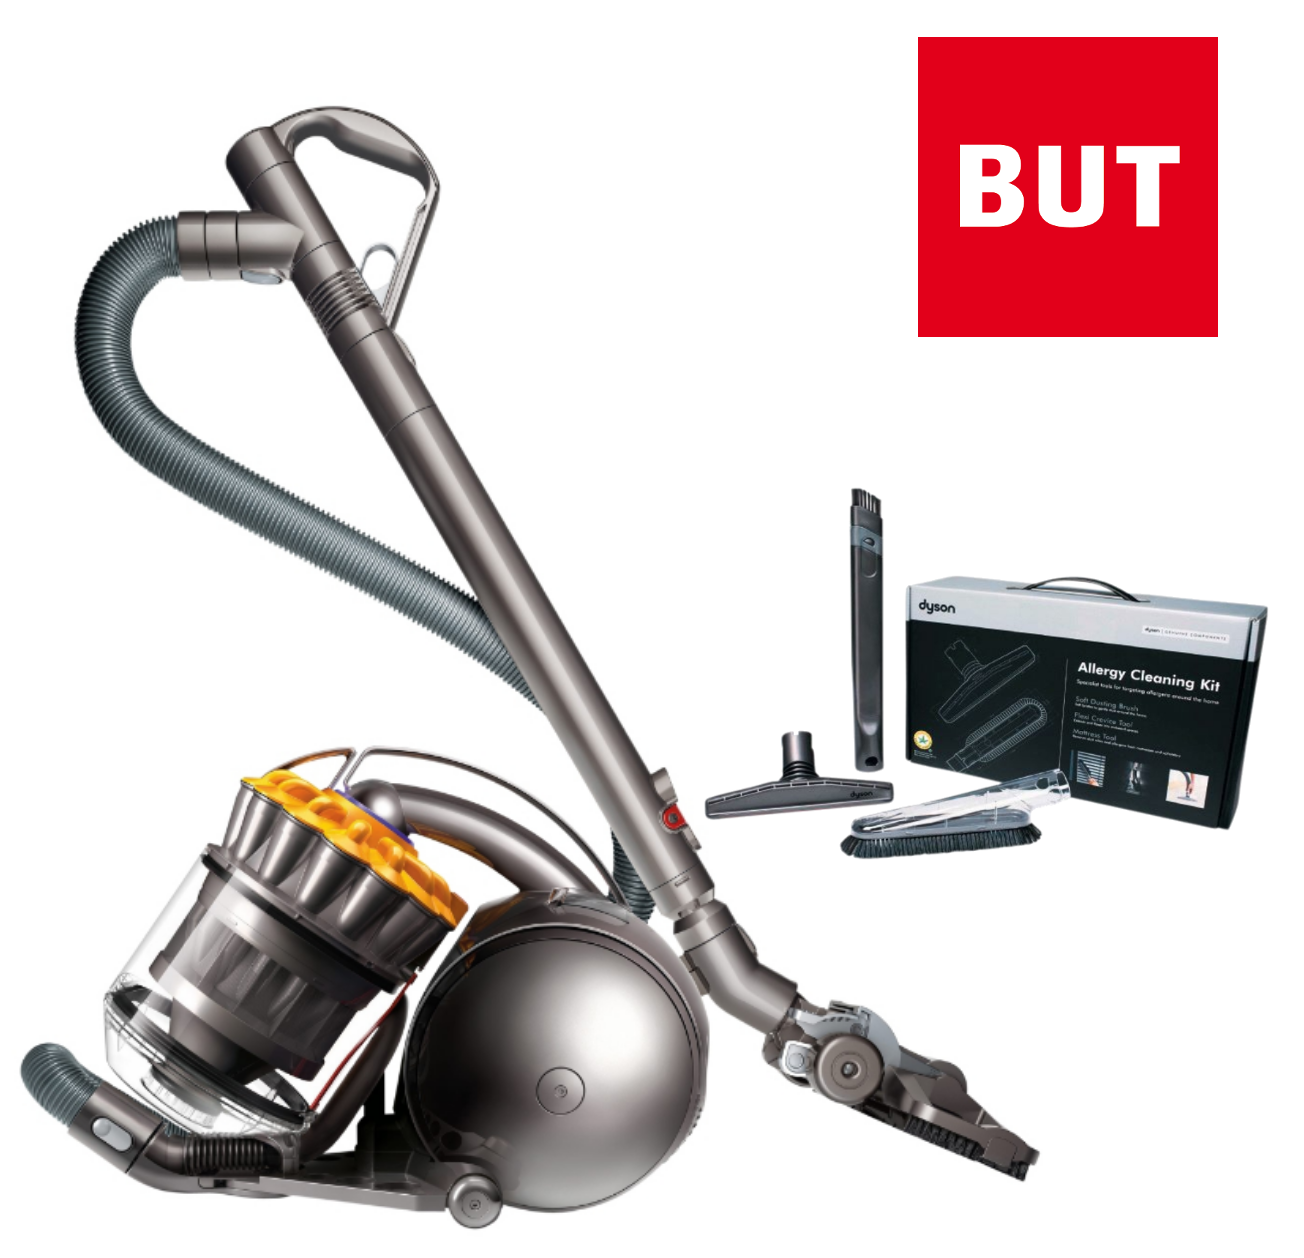 aspirateur dyson dc33c allergy kit en soldes 299 99 au lieu de 399 99 but. Black Bedroom Furniture Sets. Home Design Ideas